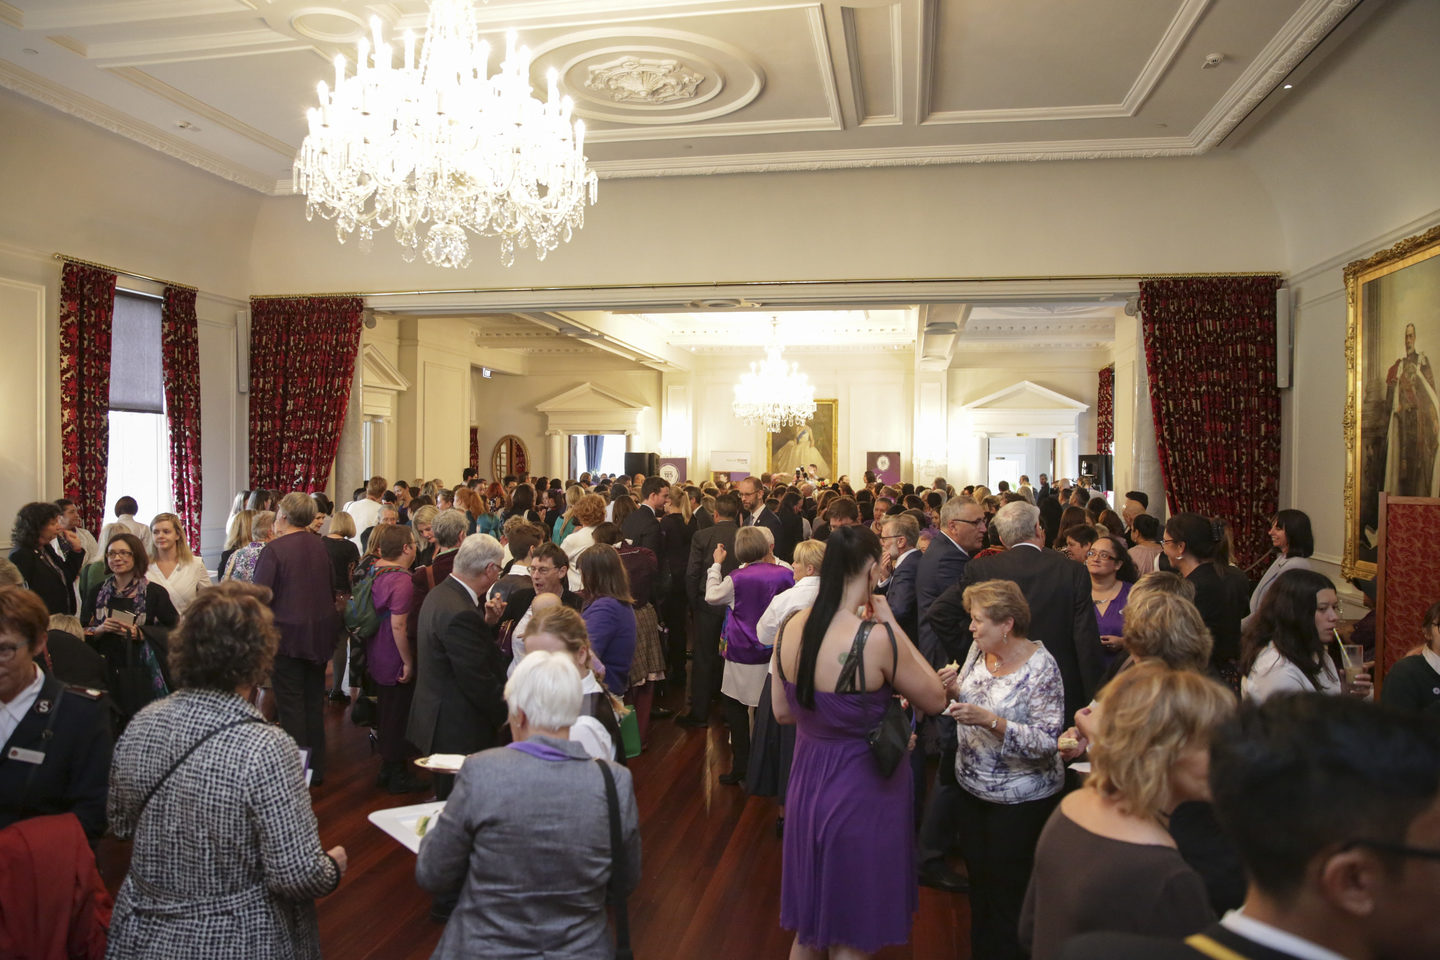 The event was awash with purple and white.